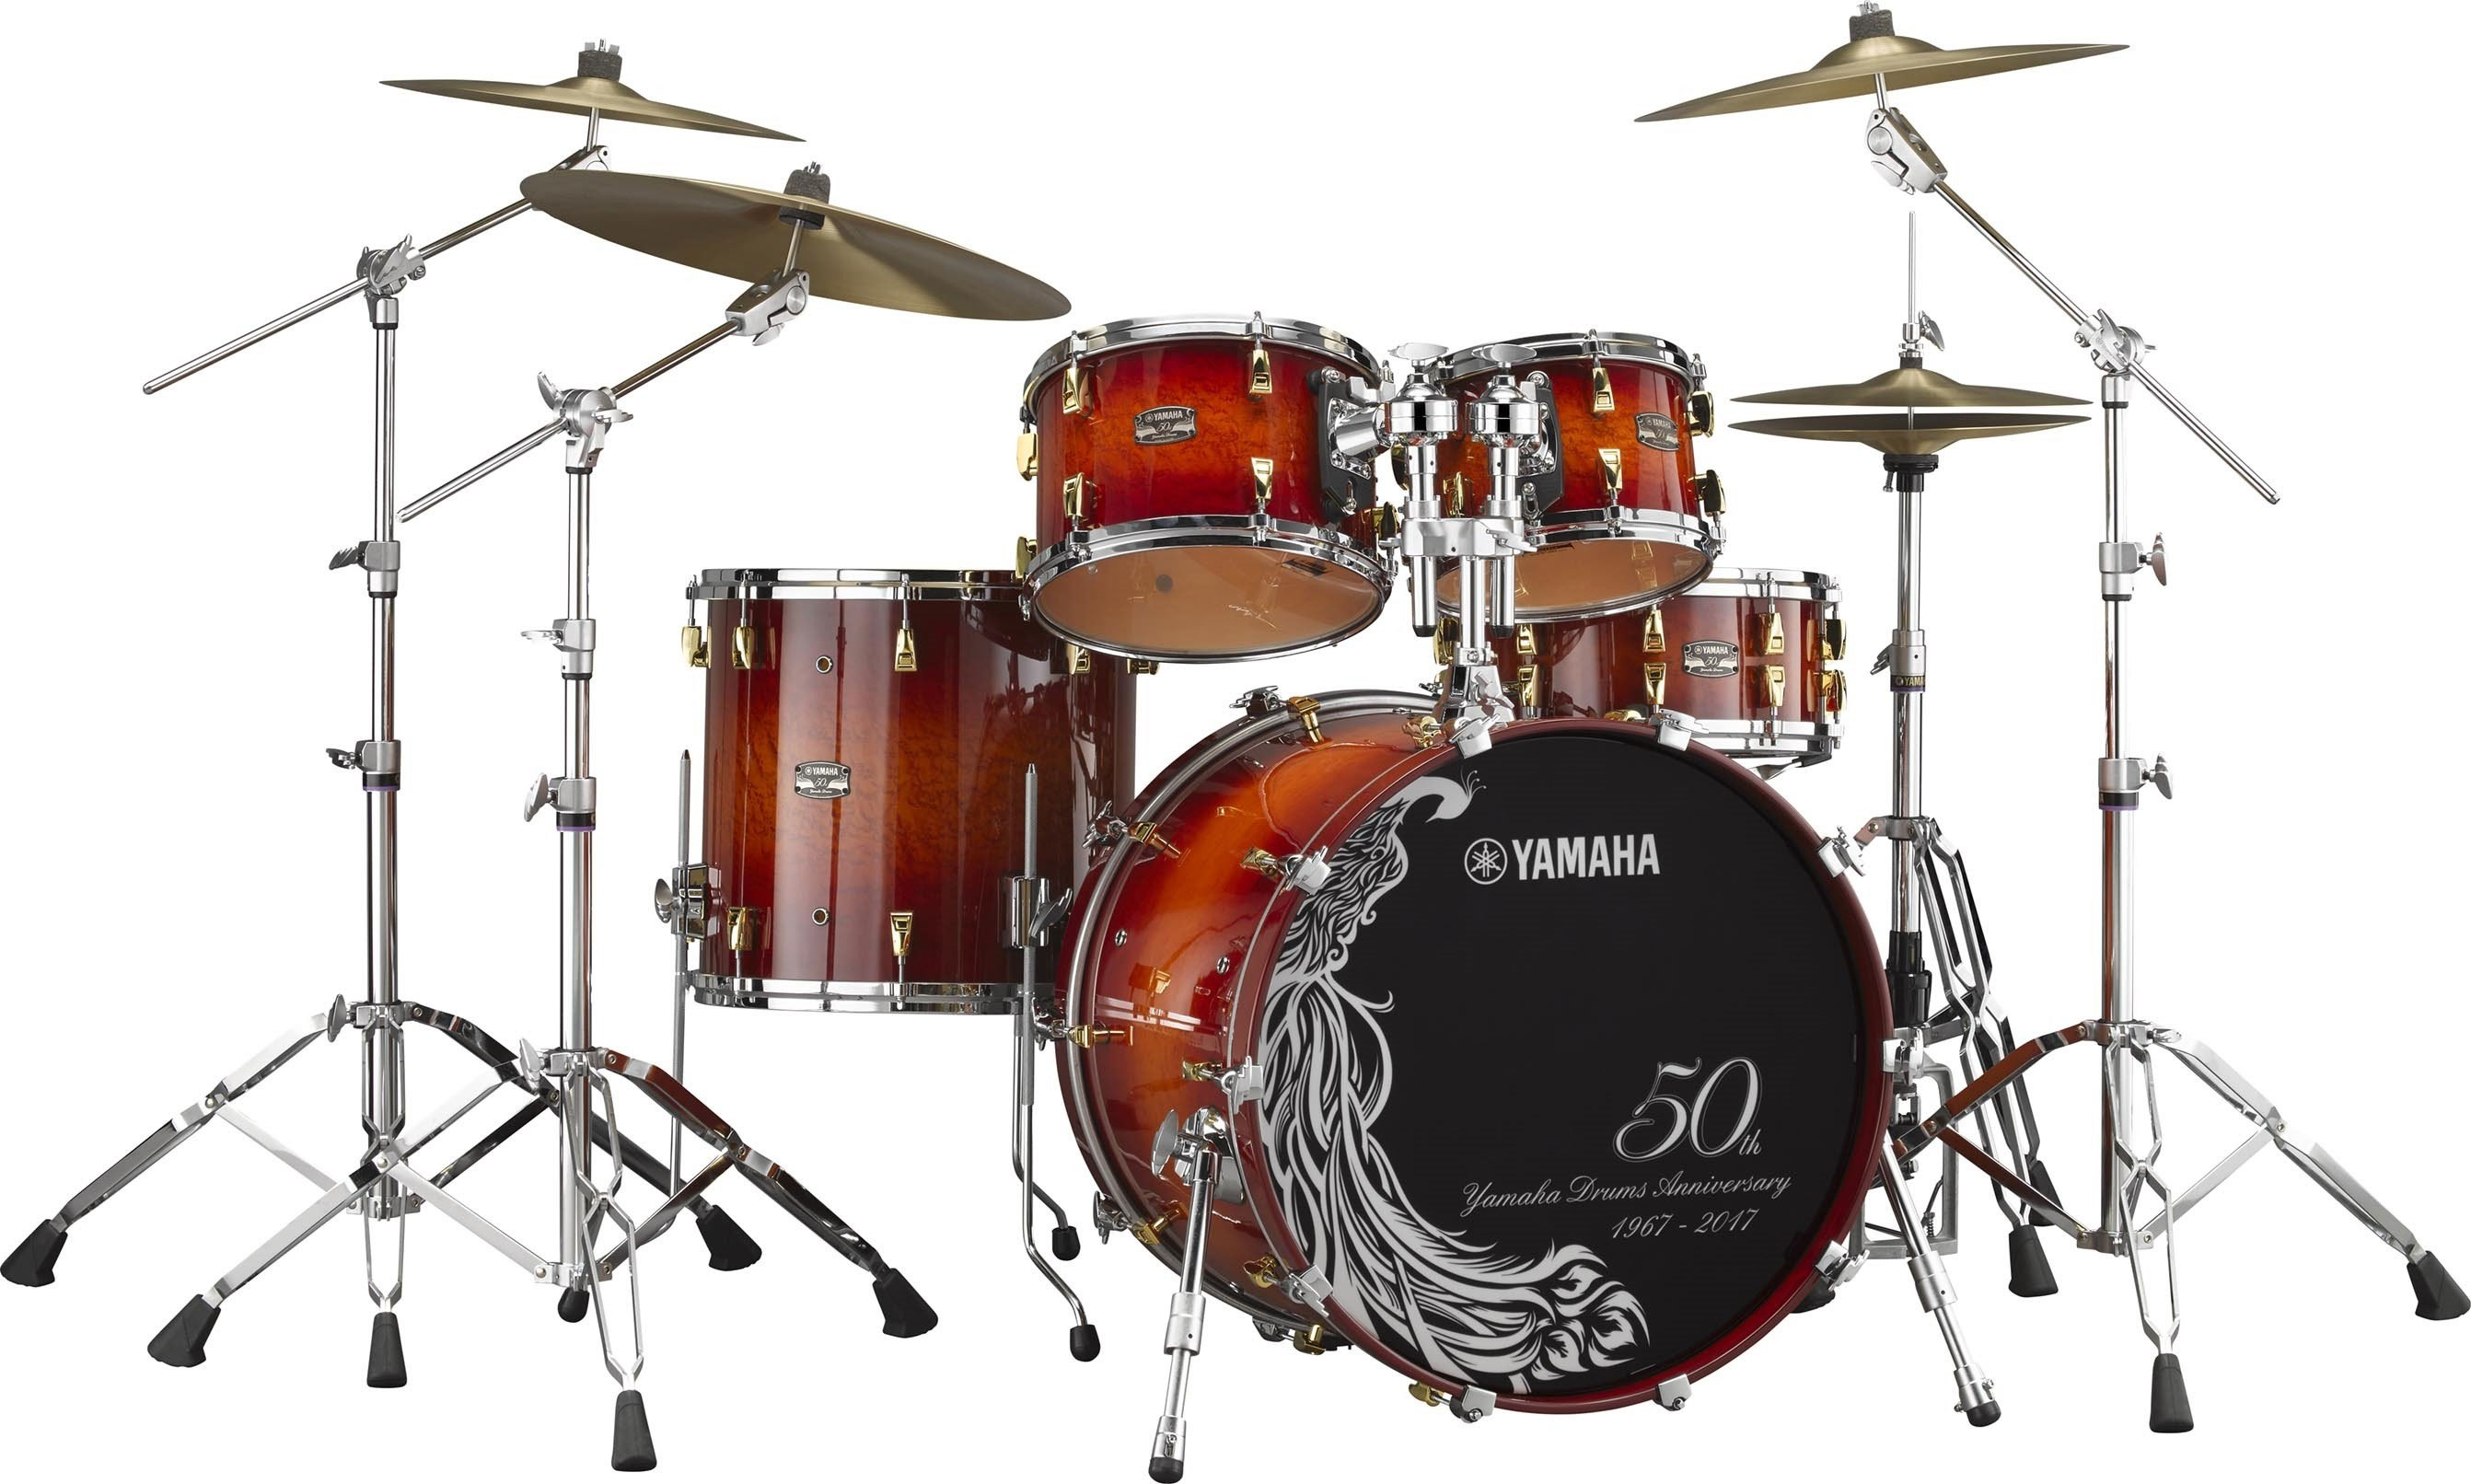 50th anniversary kit overview drum sets acoustic drums drums musical instruments. Black Bedroom Furniture Sets. Home Design Ideas